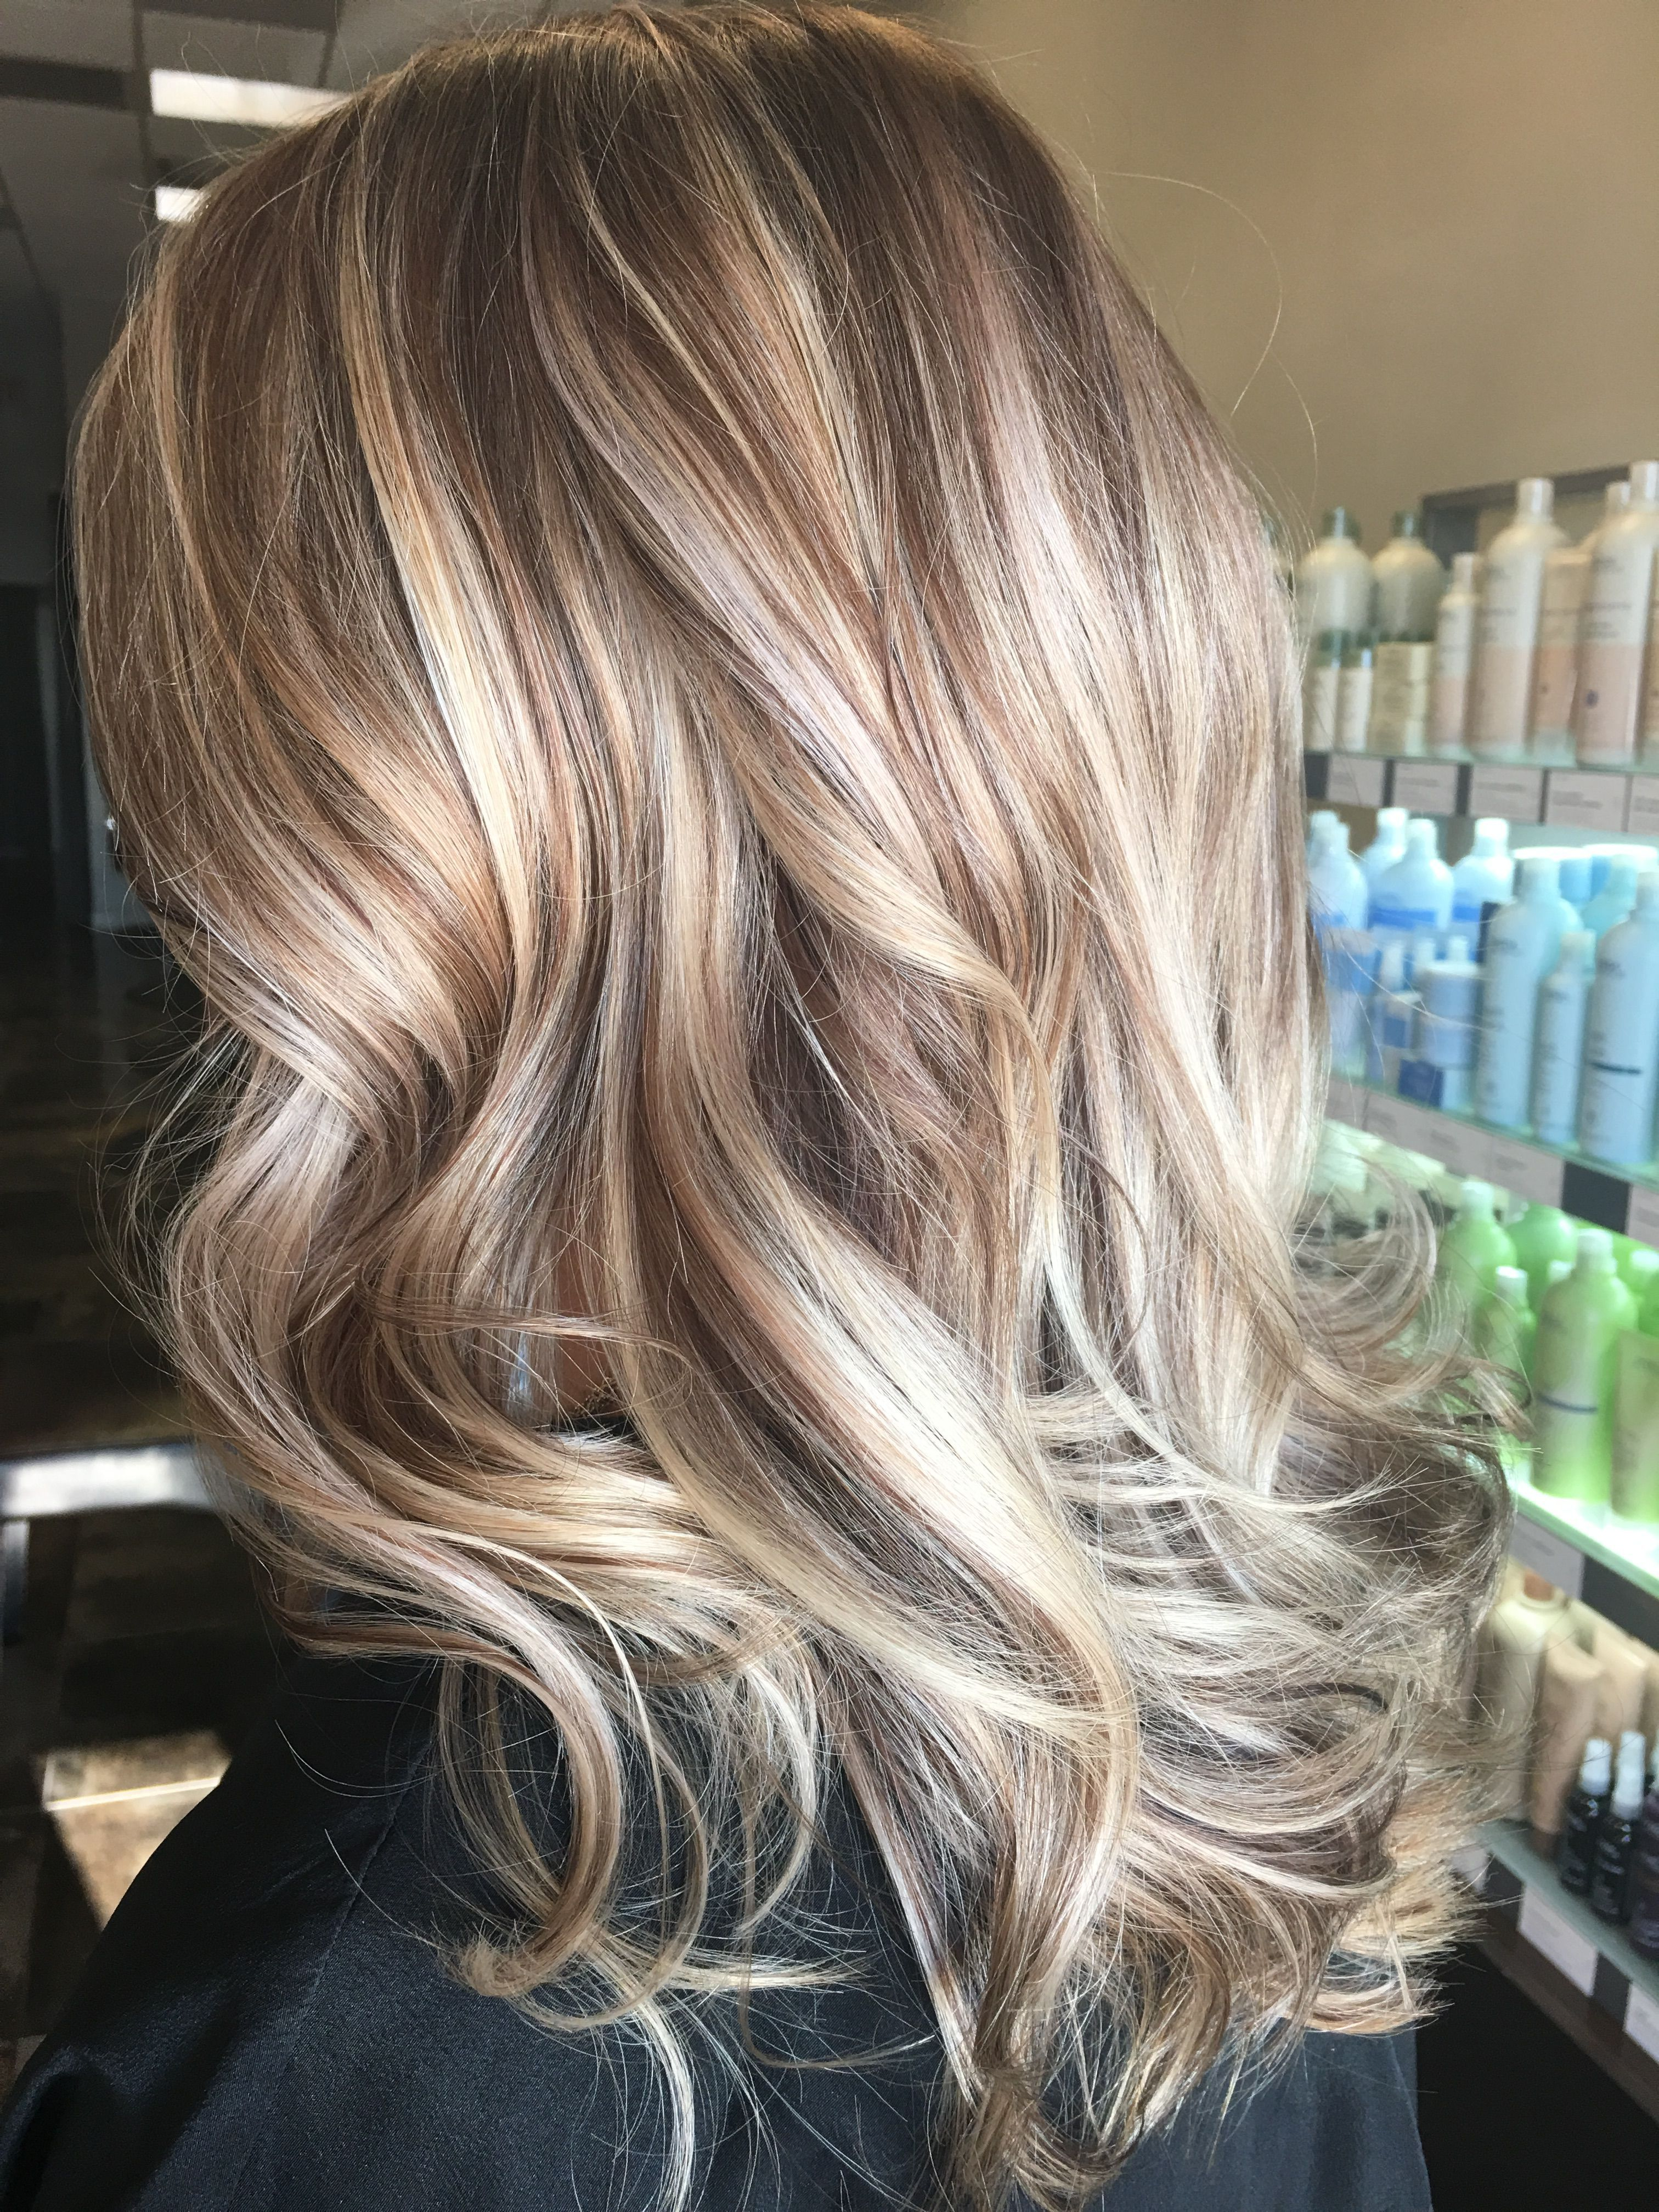 Beautiful Fall Winter High And Low Lights Makeupideaswinter Light Hair Low Lights Hair Hair Styles